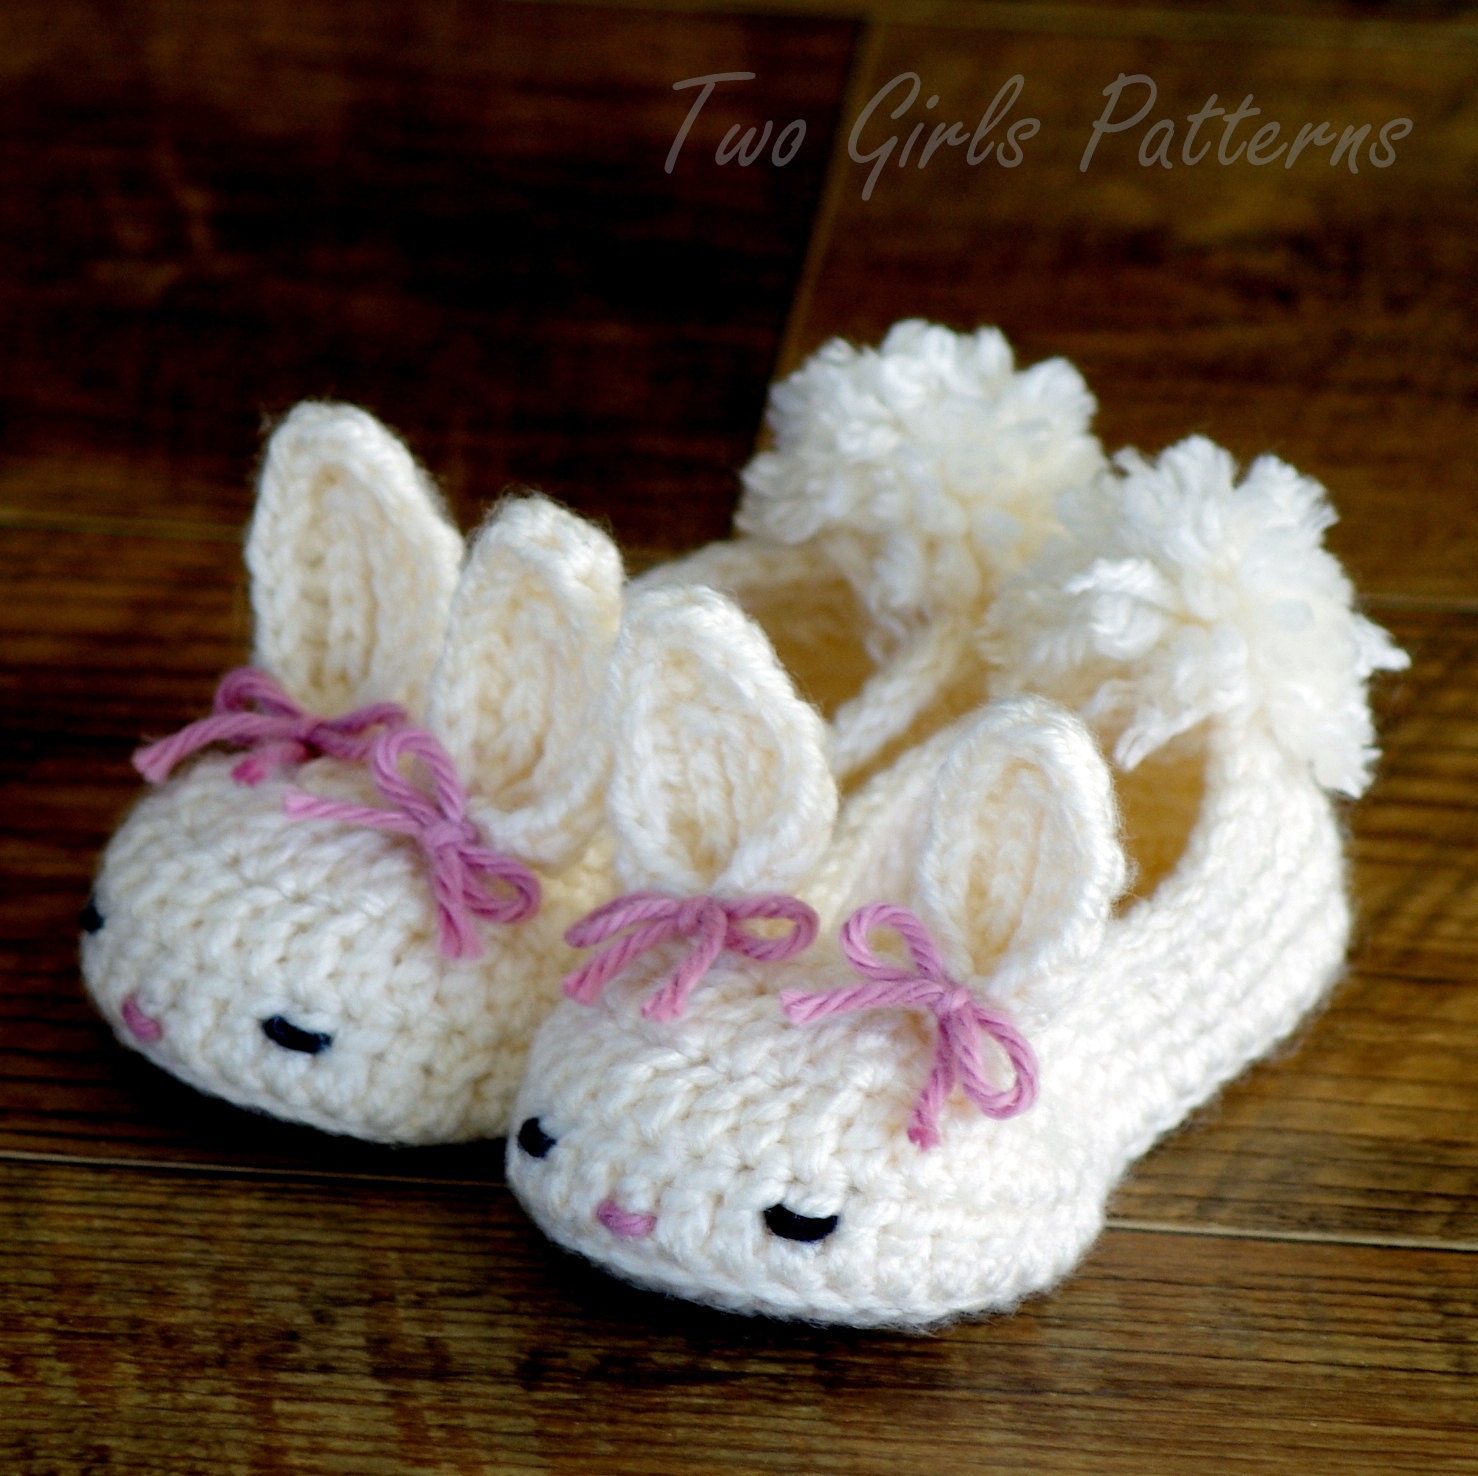 bc72c978a72b0 Crochet Pattern Baby Booties The Classic Year-Round Bunny House Slippers  PDF Pattern - Pattern number 204 Instant Download kc550